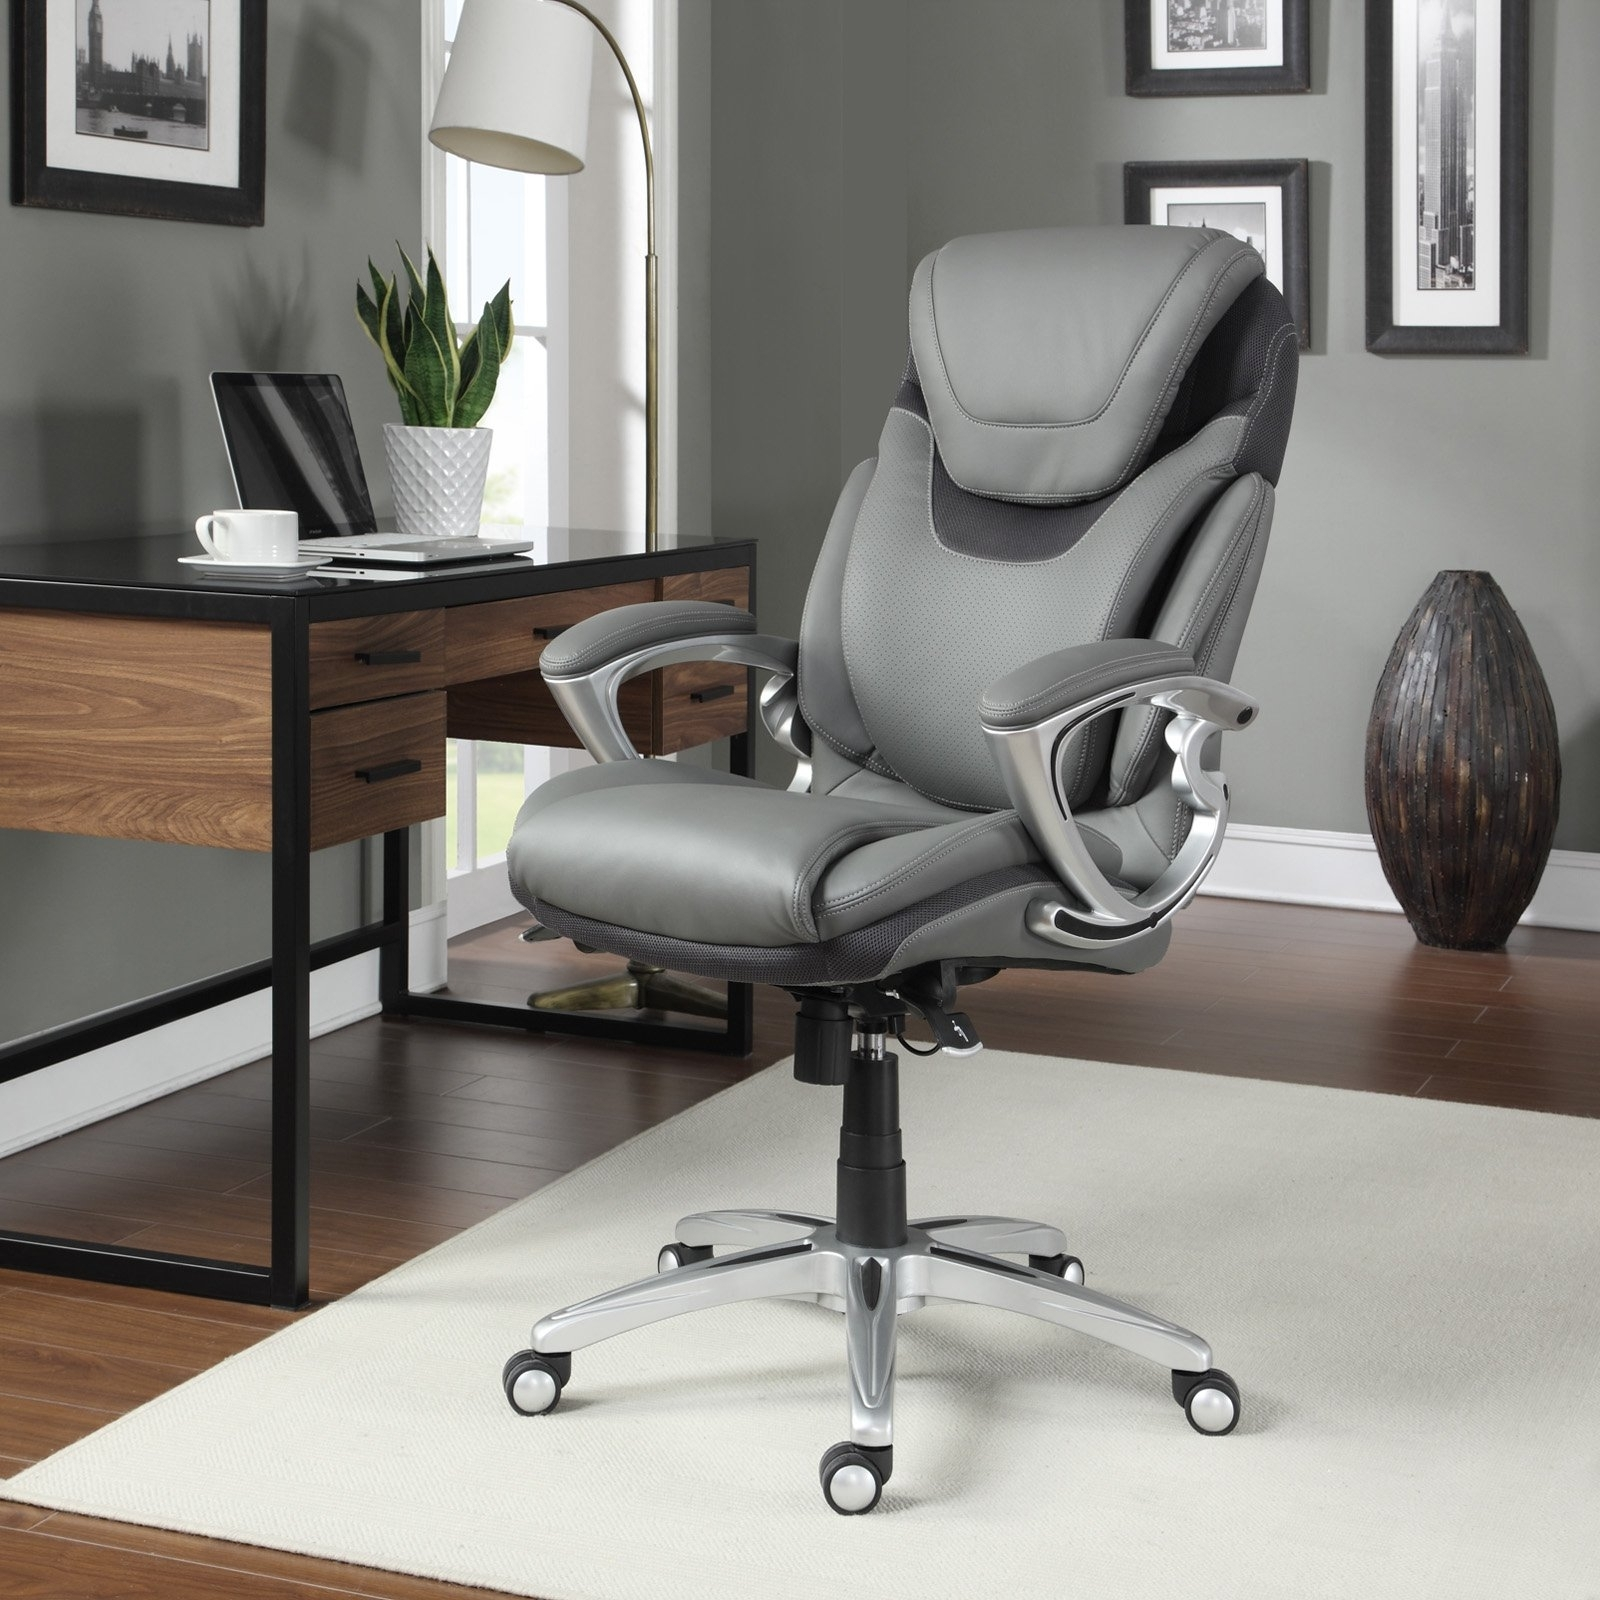 Most Recent Light Beige Microfiber Executive Office Chairs Within Serta Microfiber Executive Office Chair – Light Beige (View 15 of 20)